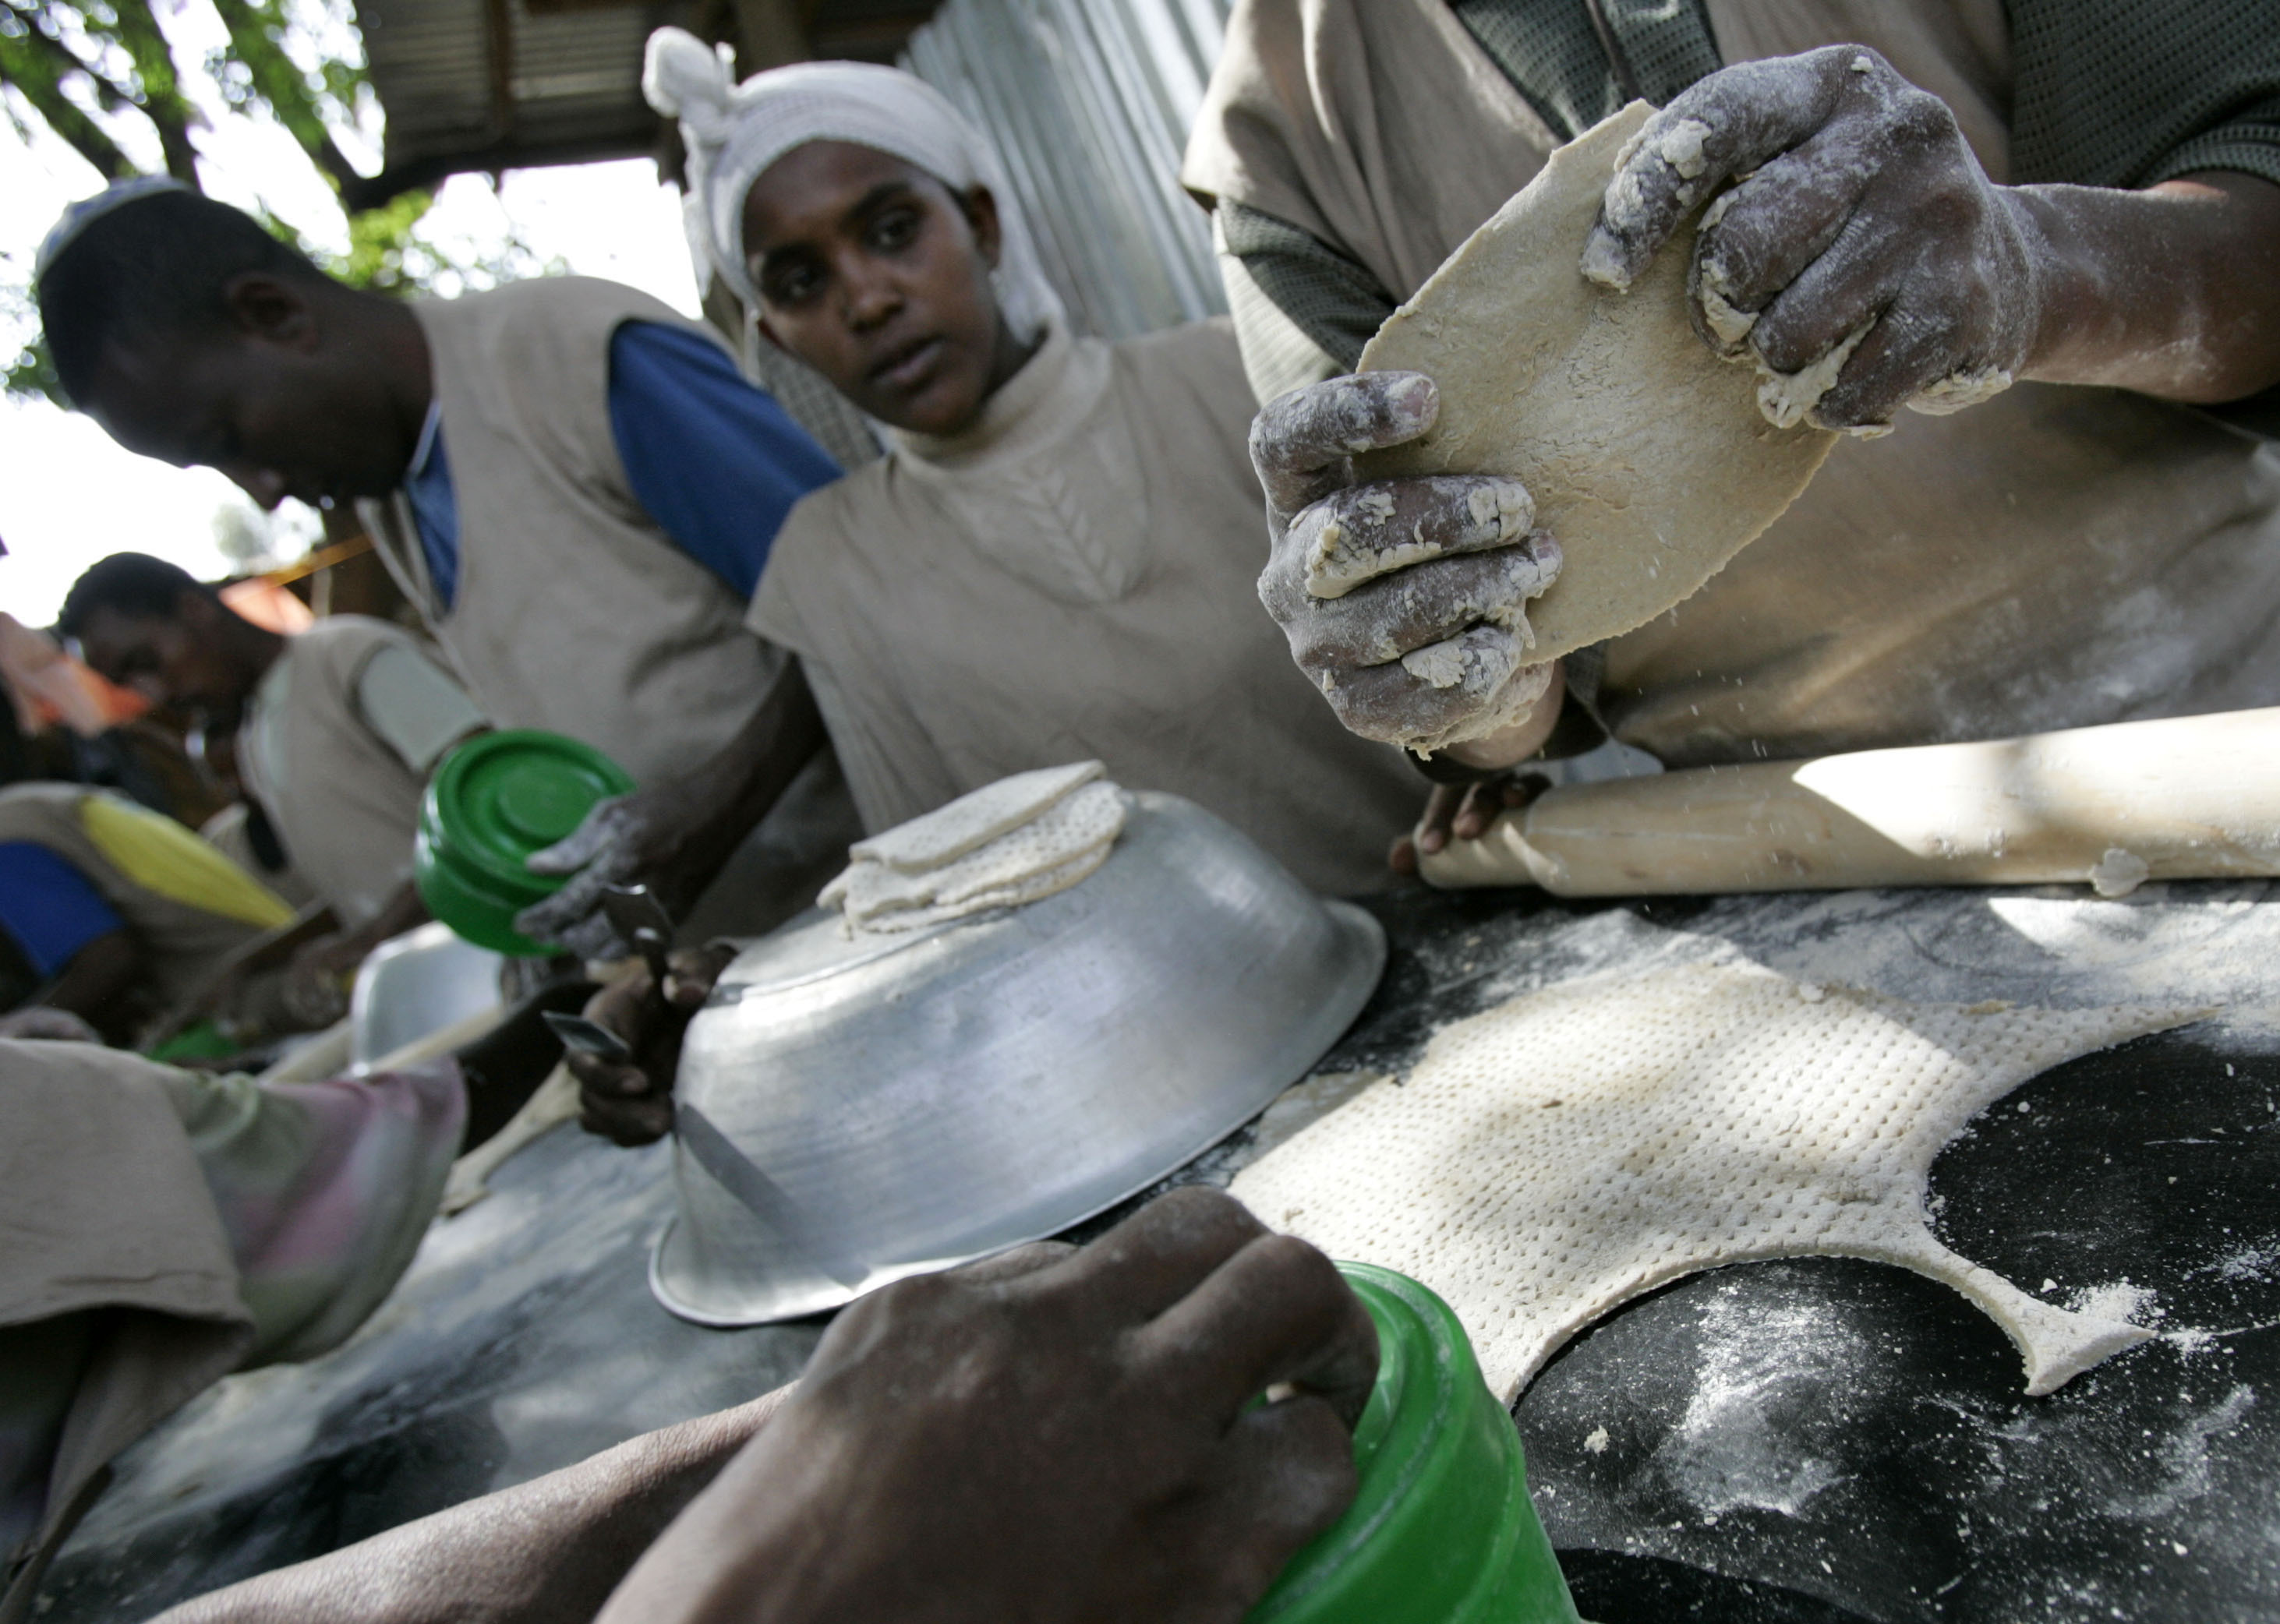 Jewish Ethiopians make matzah in preparation for Passover at a compound while awaiting immigration to Israel in Gondar March 9, 2007 (ELIANA APONTE/REUTERS).